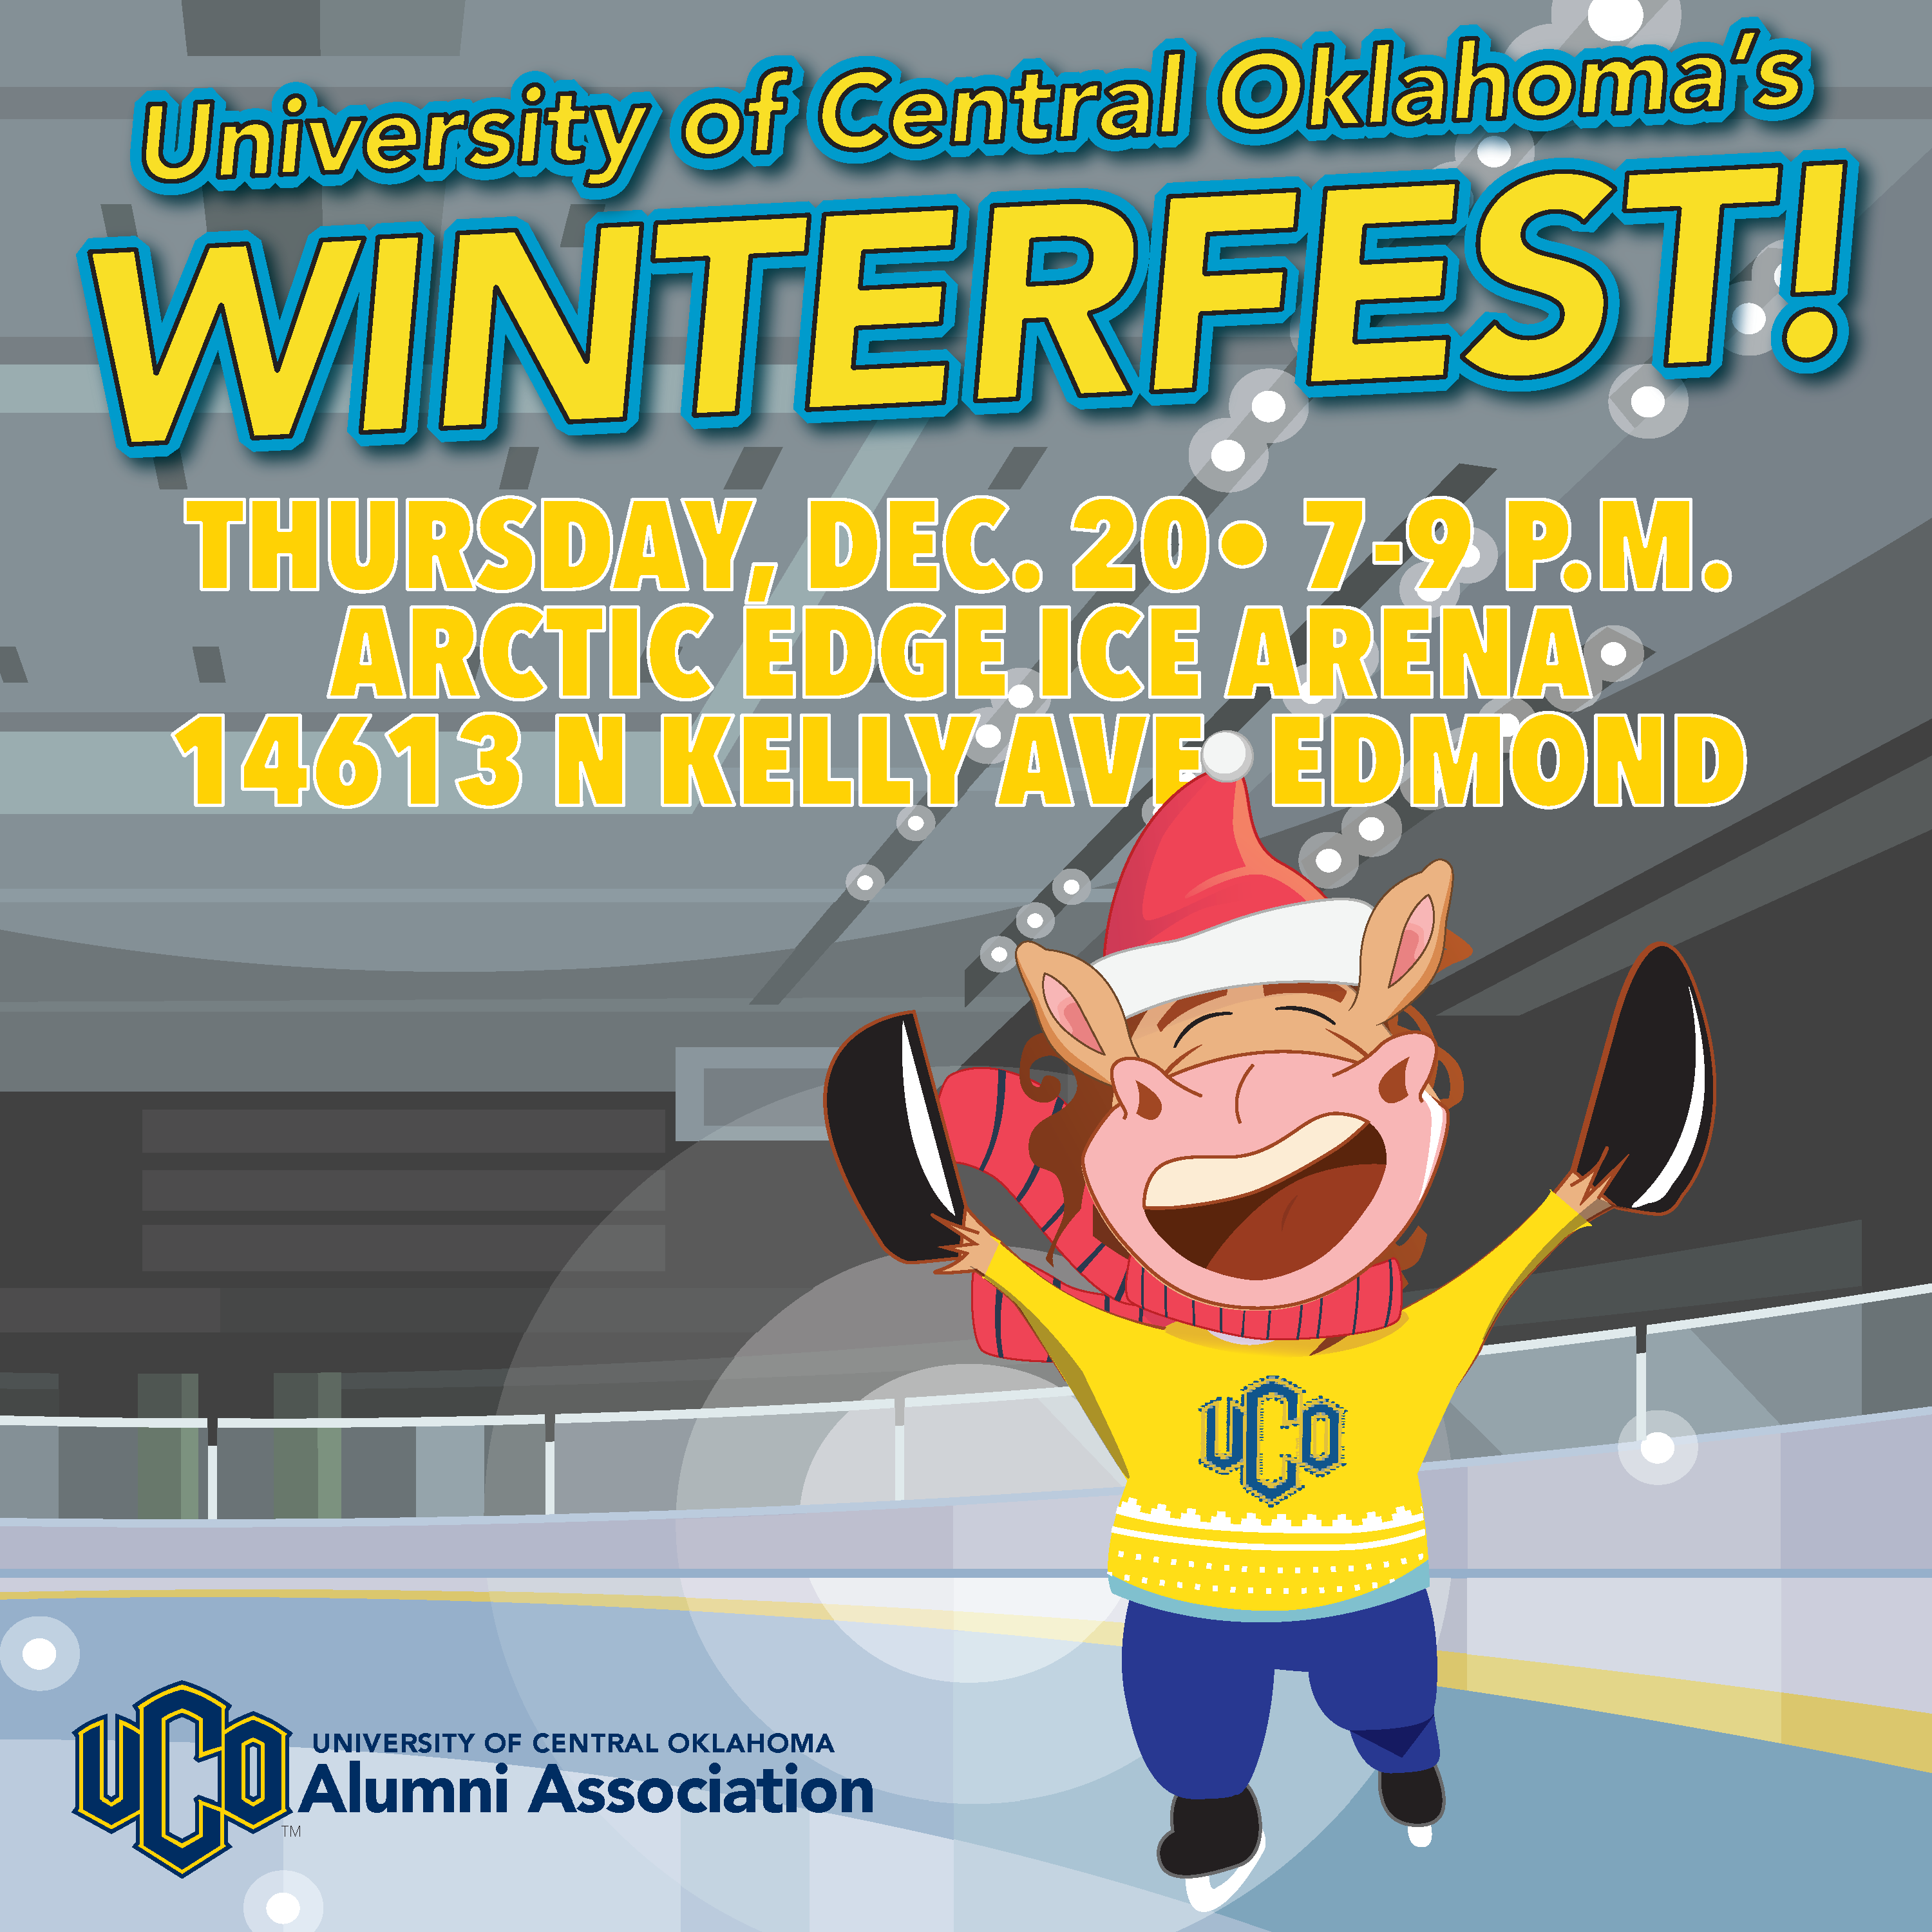 University of Central Oklahoma's Winterfest! Thursday, December 20, 7-9 p.m., Artic Edge Ice Arena, 14613 North Kelly Avenue, Edmond, UCO Alumni Association